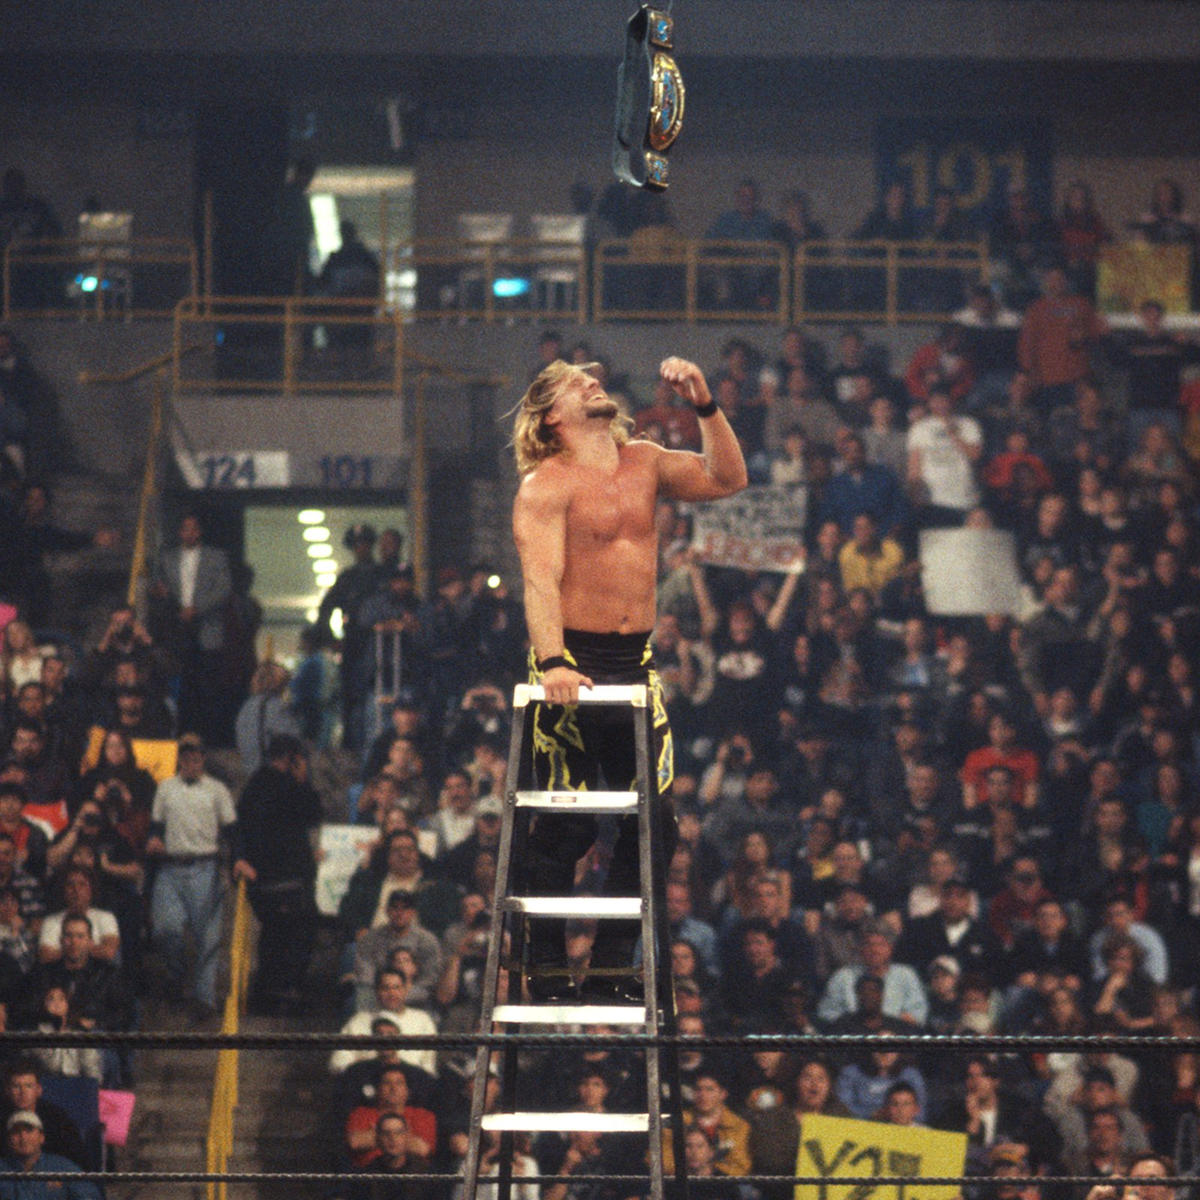 """The Best in the World at What He Does"" became Intercontinental Champion a fourth time at the 2001 Royal Rumble event."